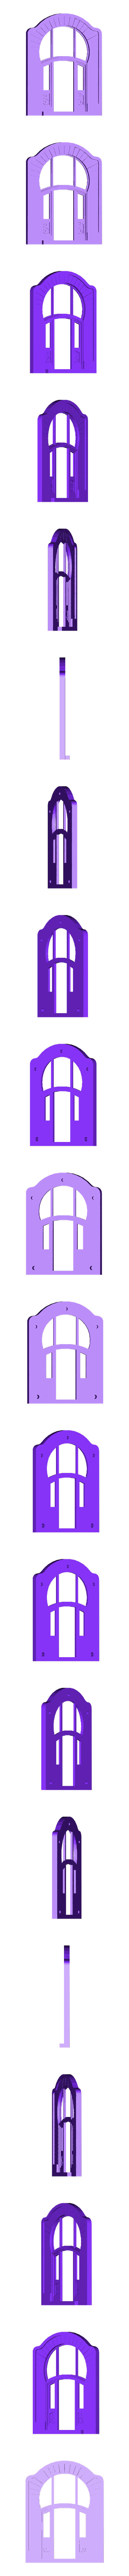 doorframe.stl Download free STL file Cereal box, Art Nouveau house • 3D printer template, Steedrick